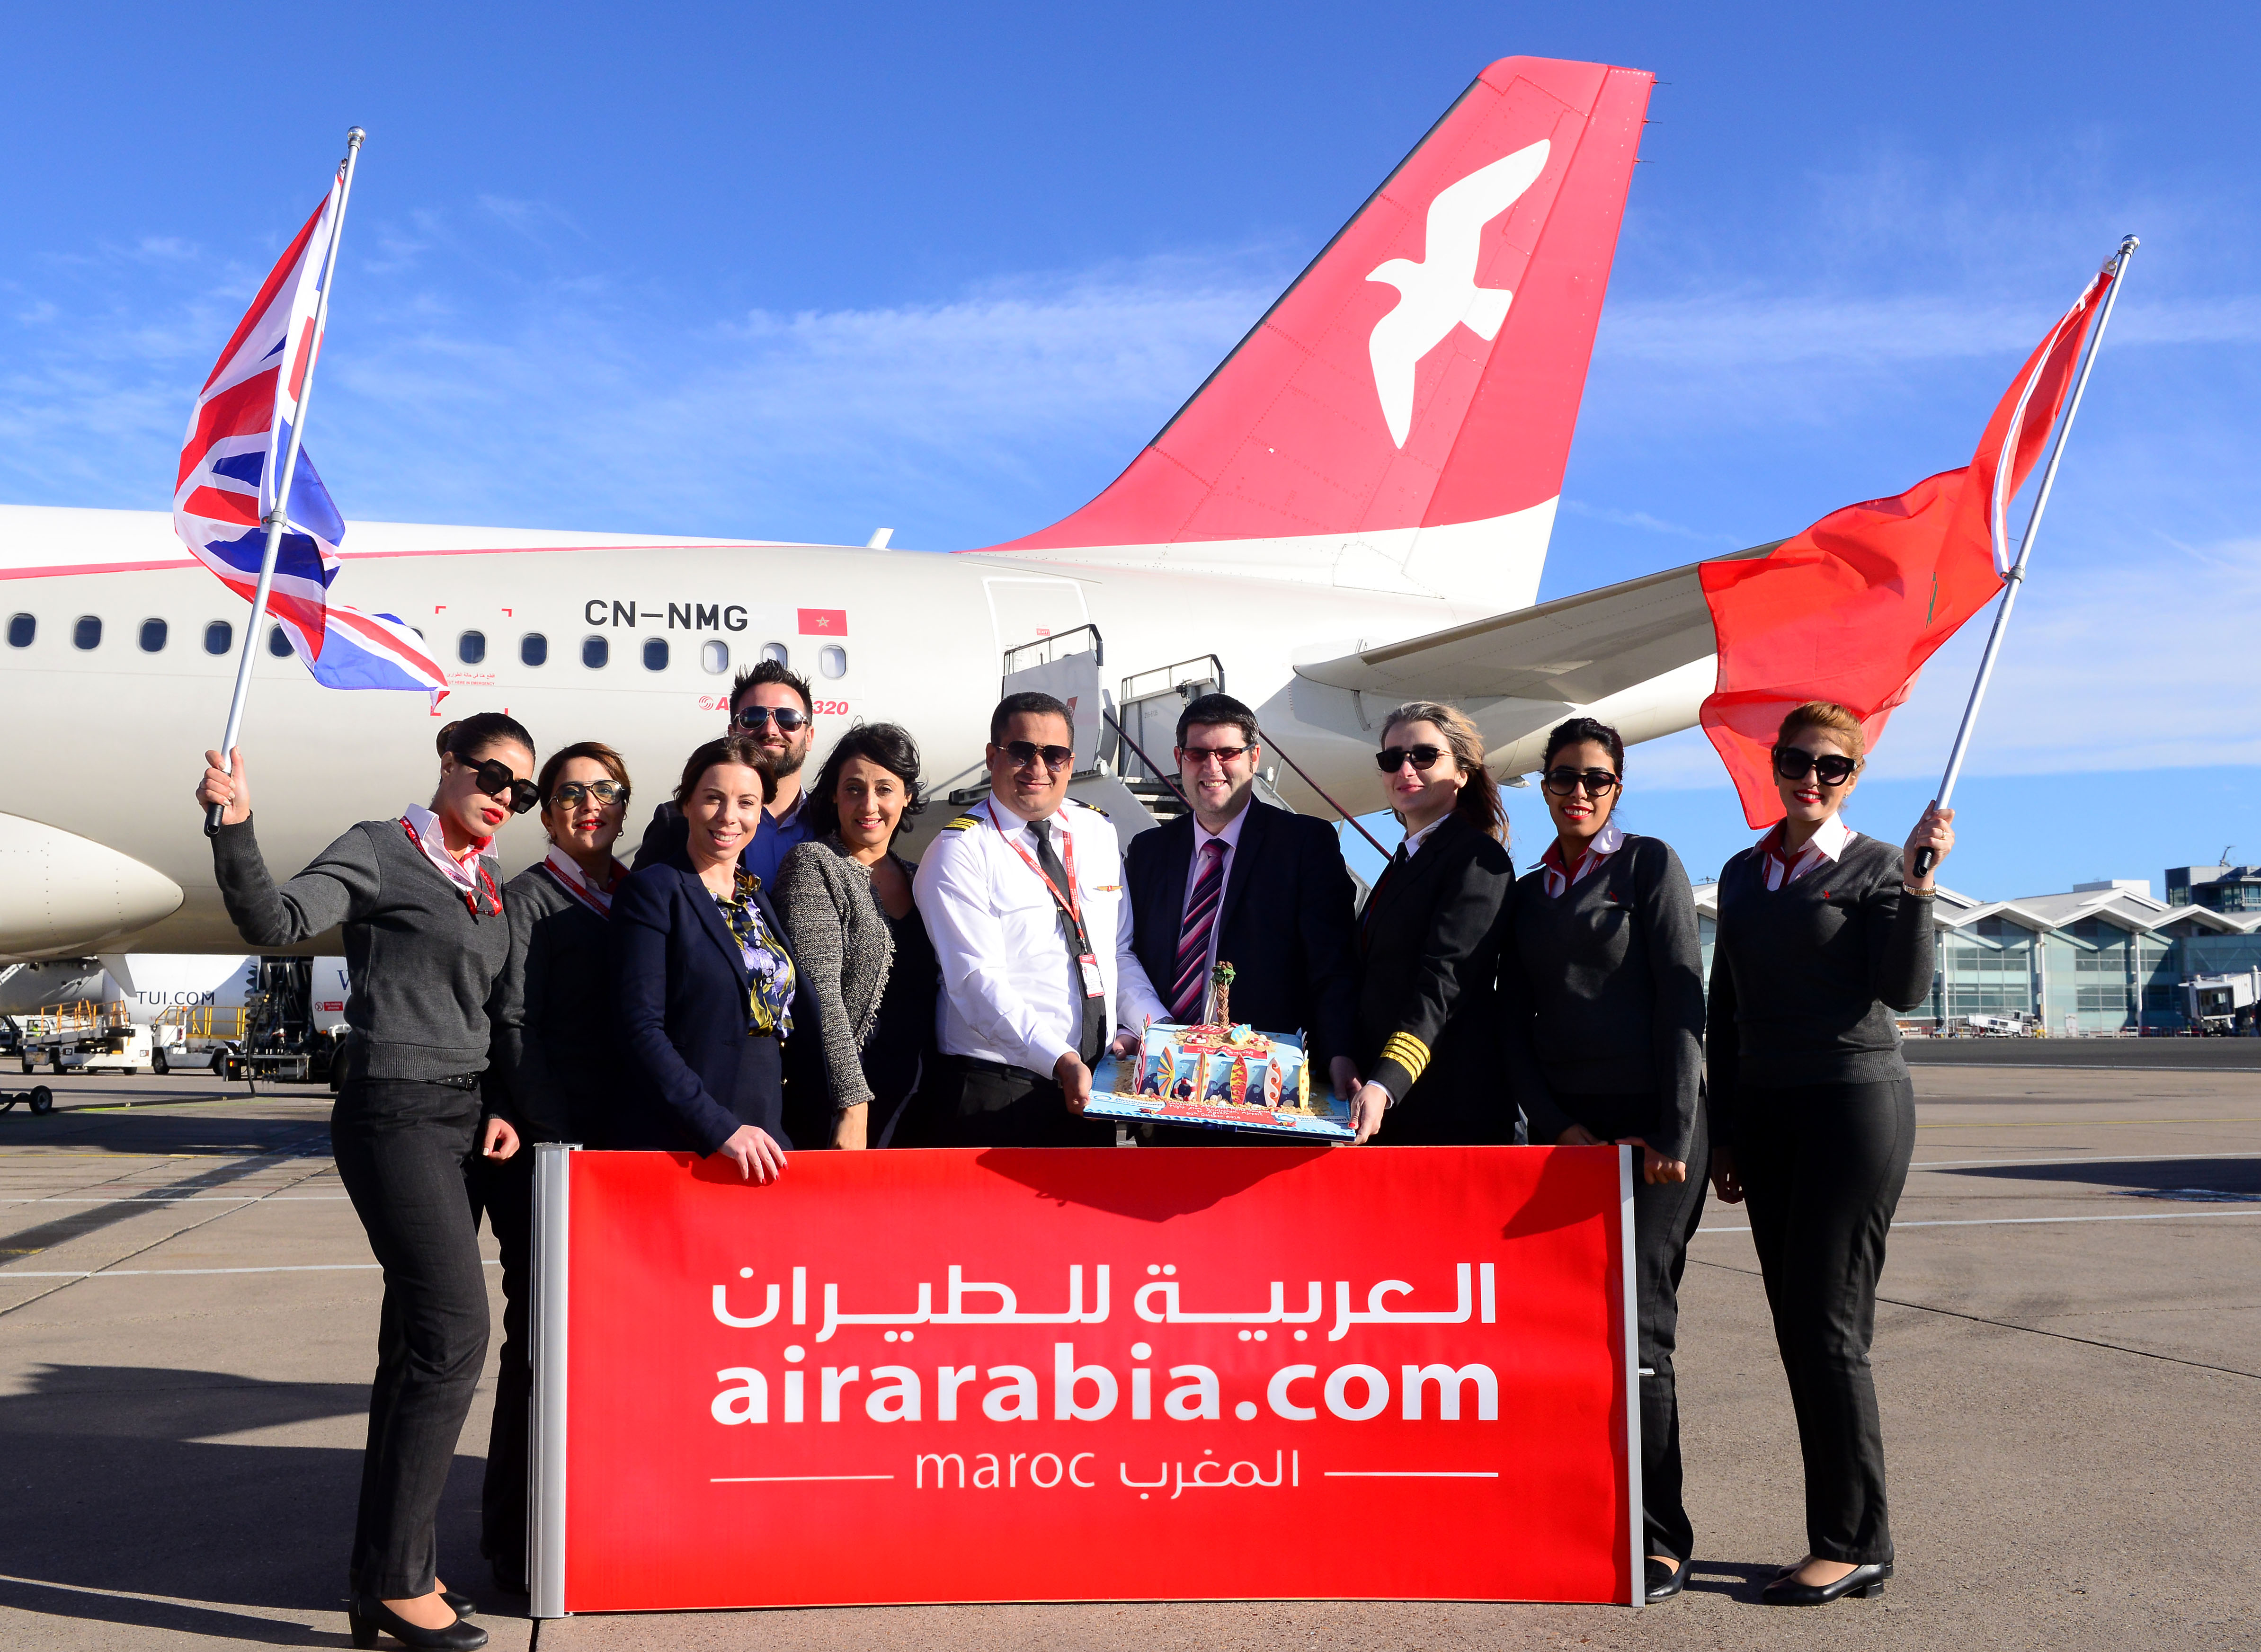 Air arabia maroc celebrates first ever direct service from tom screen acting aviation director said officially welcoming air arabia maroc to birmingham airport for the first time ever is fantastic m4hsunfo